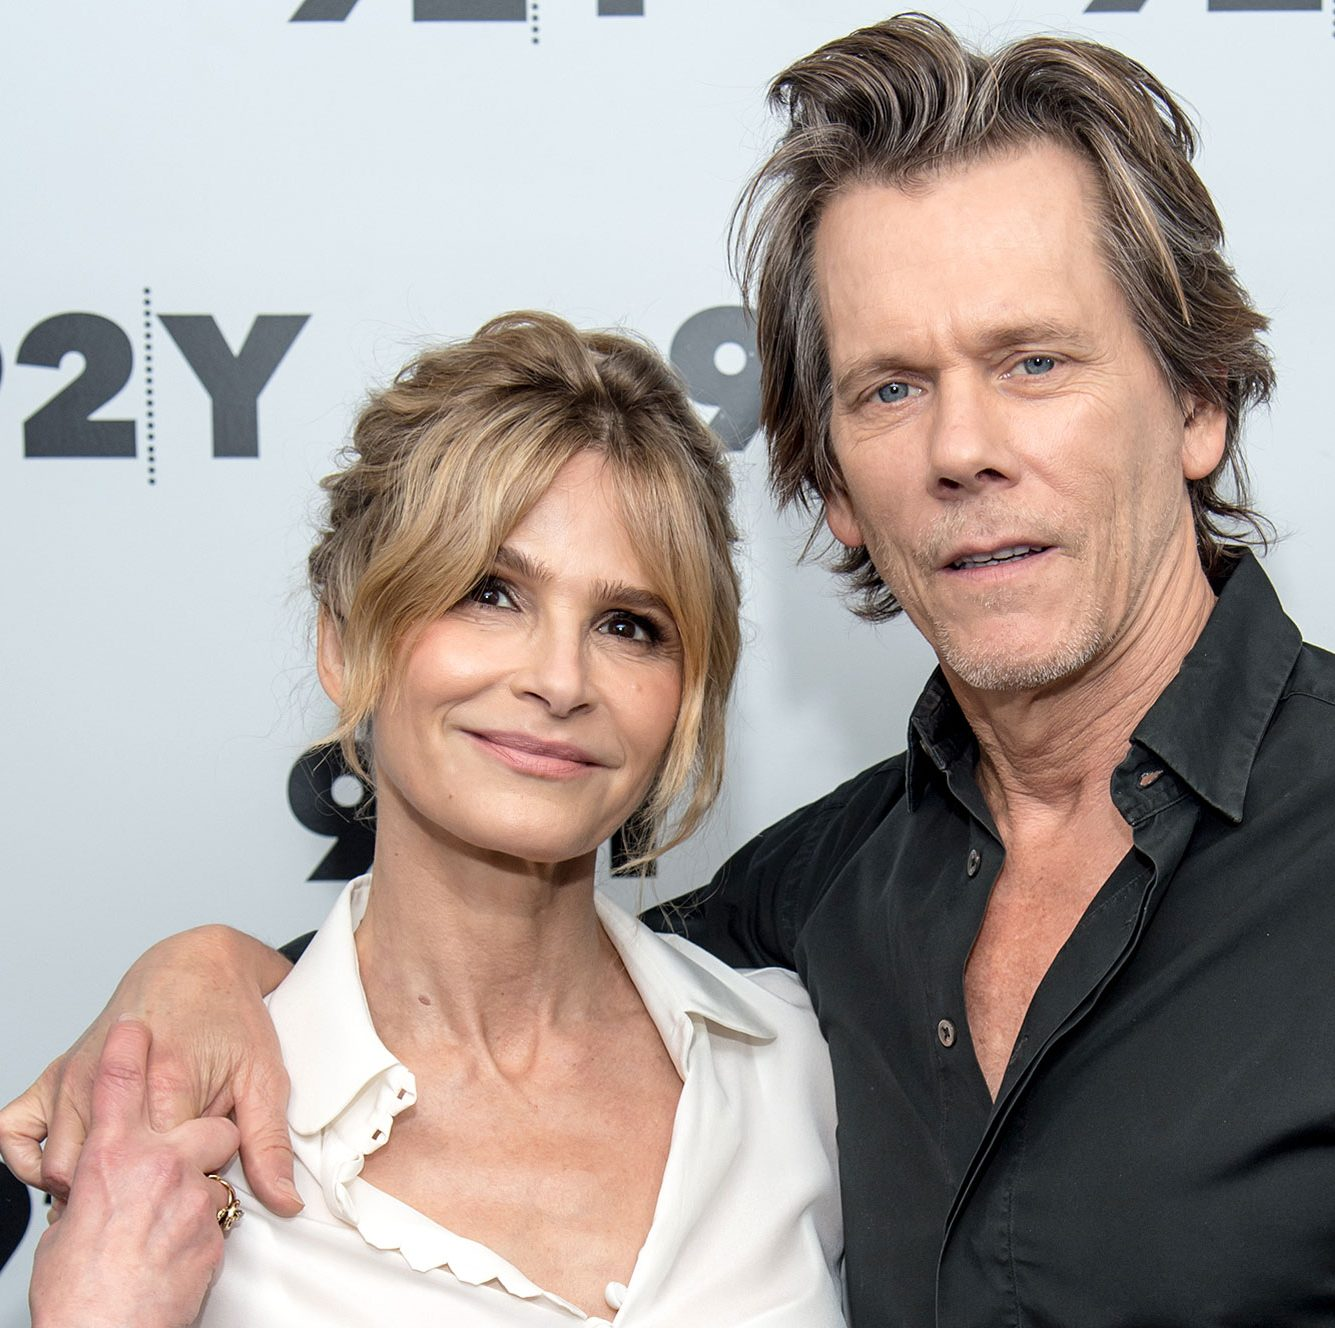 1 51 e1614938277321 The 20 Most Gorgeous Celebrity Couples Of All Time